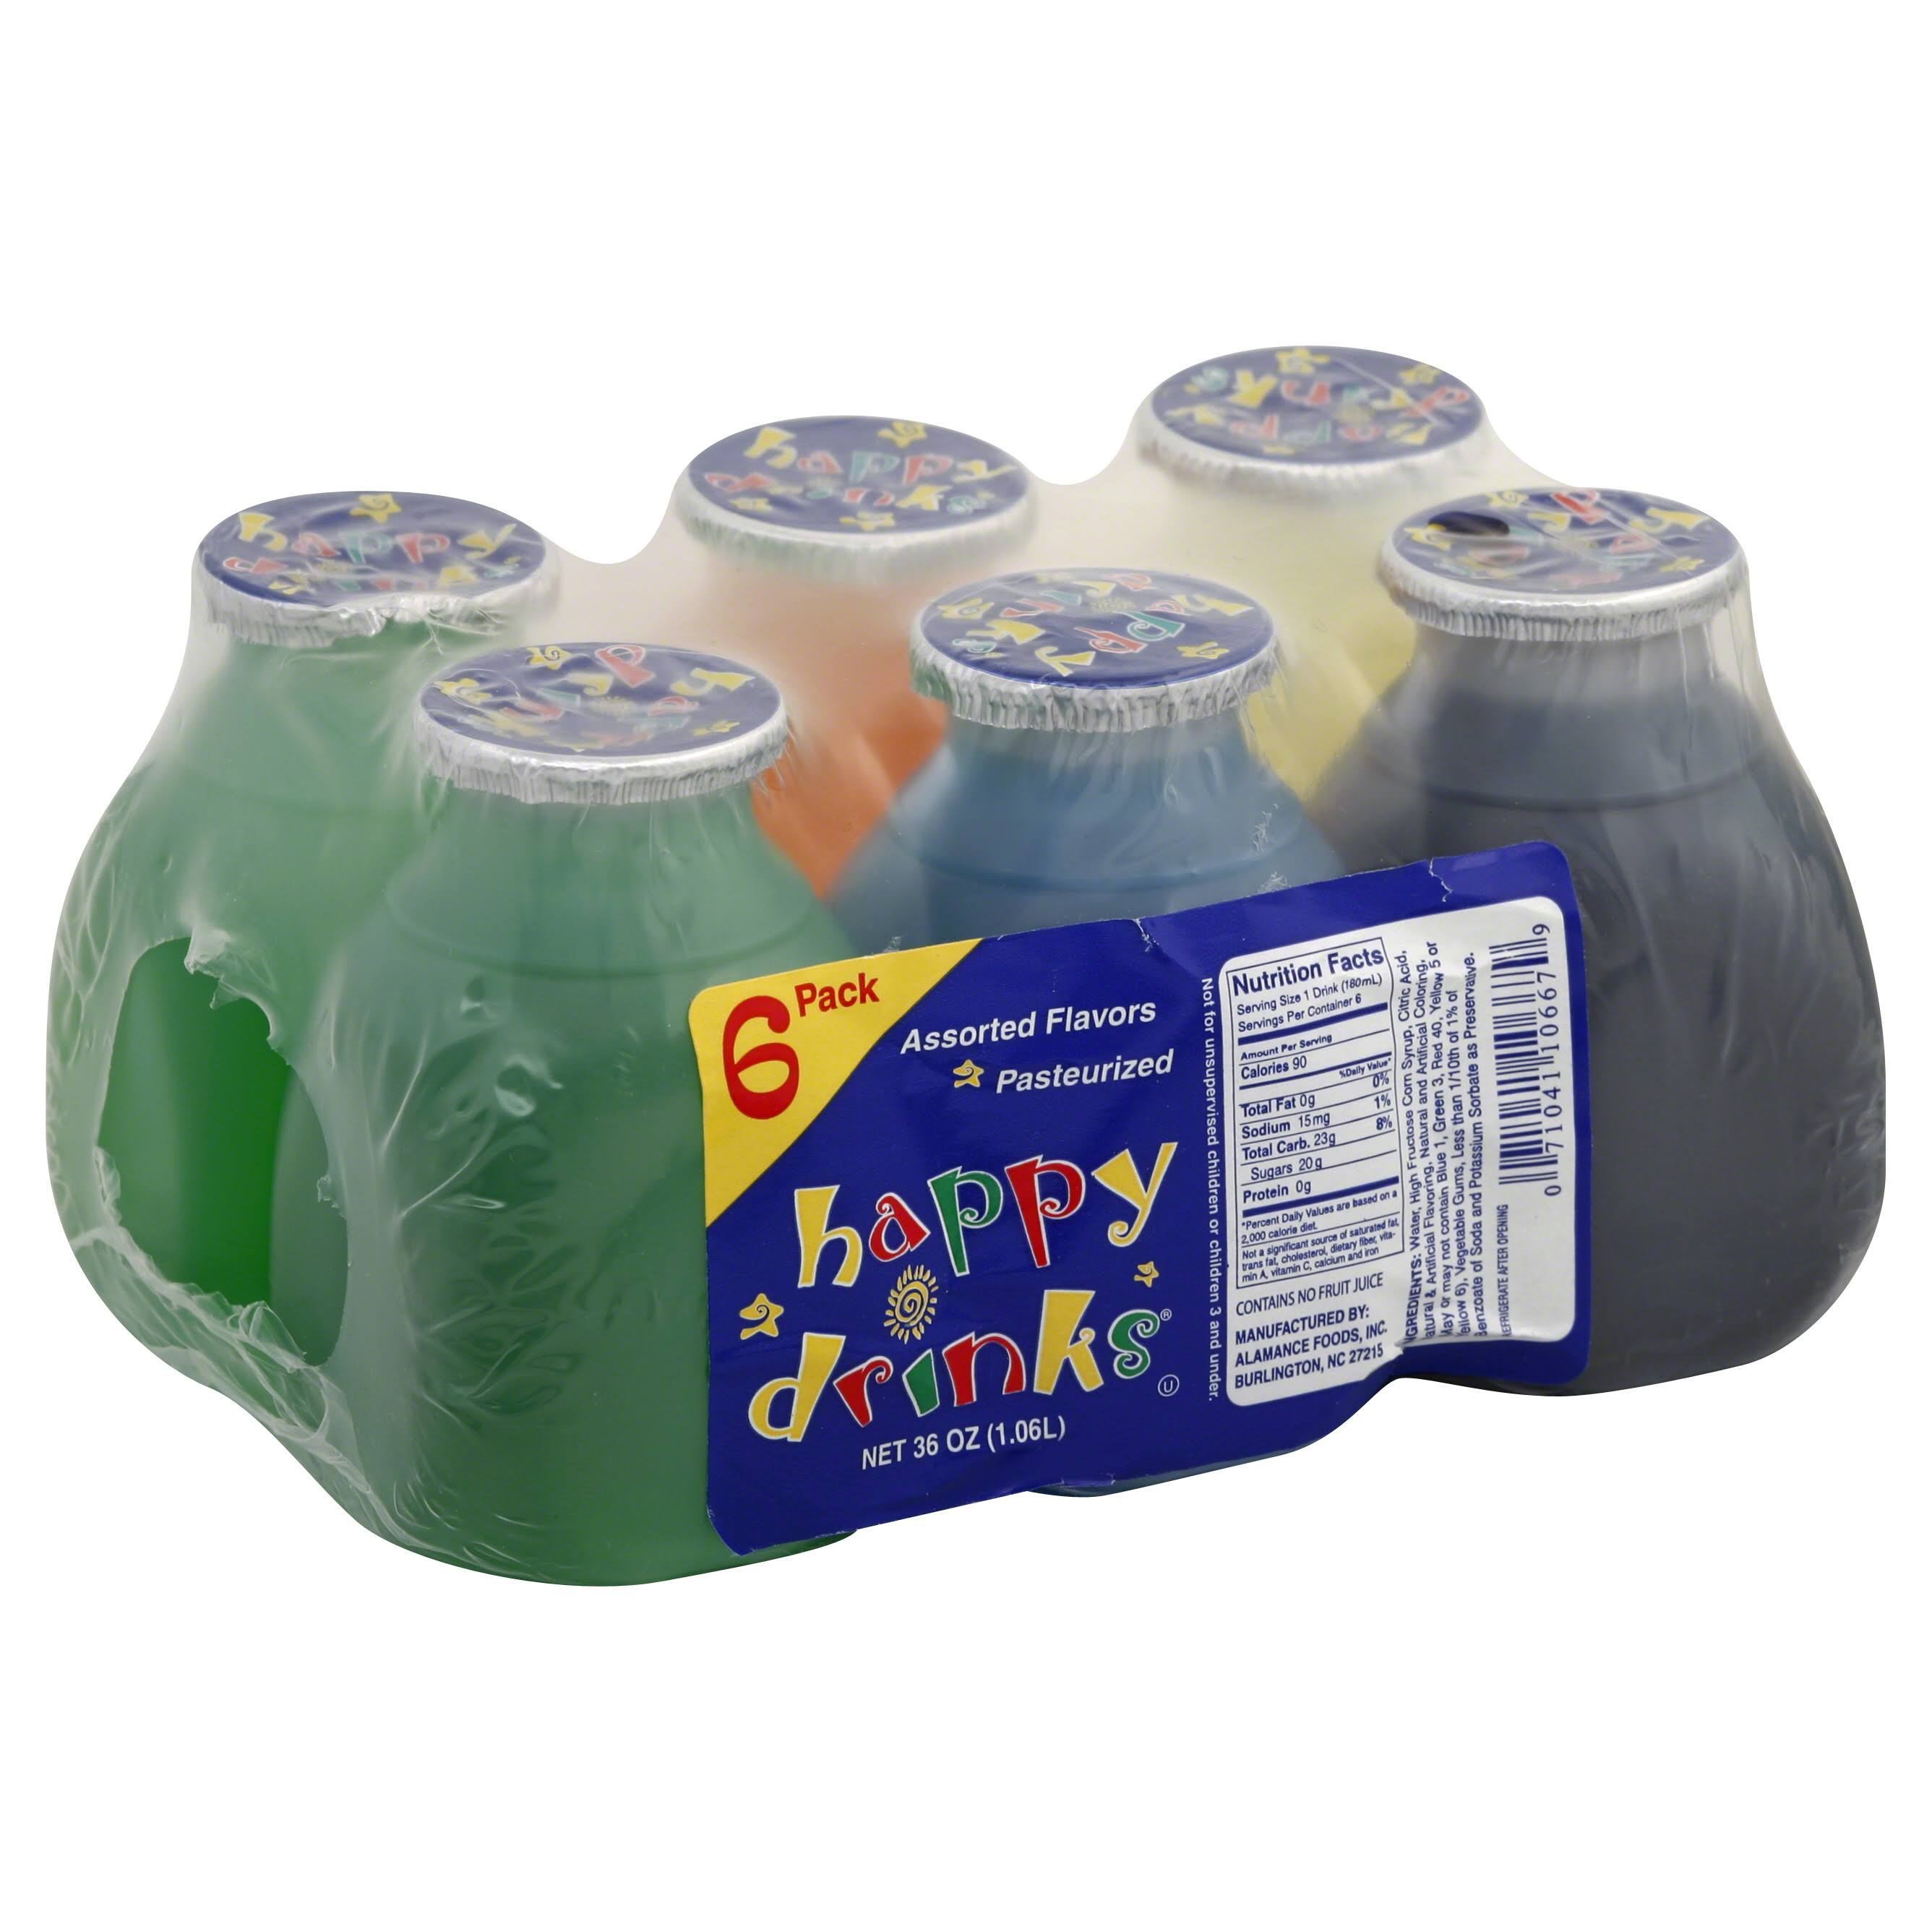 Happy Drinks Flavored Drinks, Assorted Flavors - 6 drinks, 36 oz